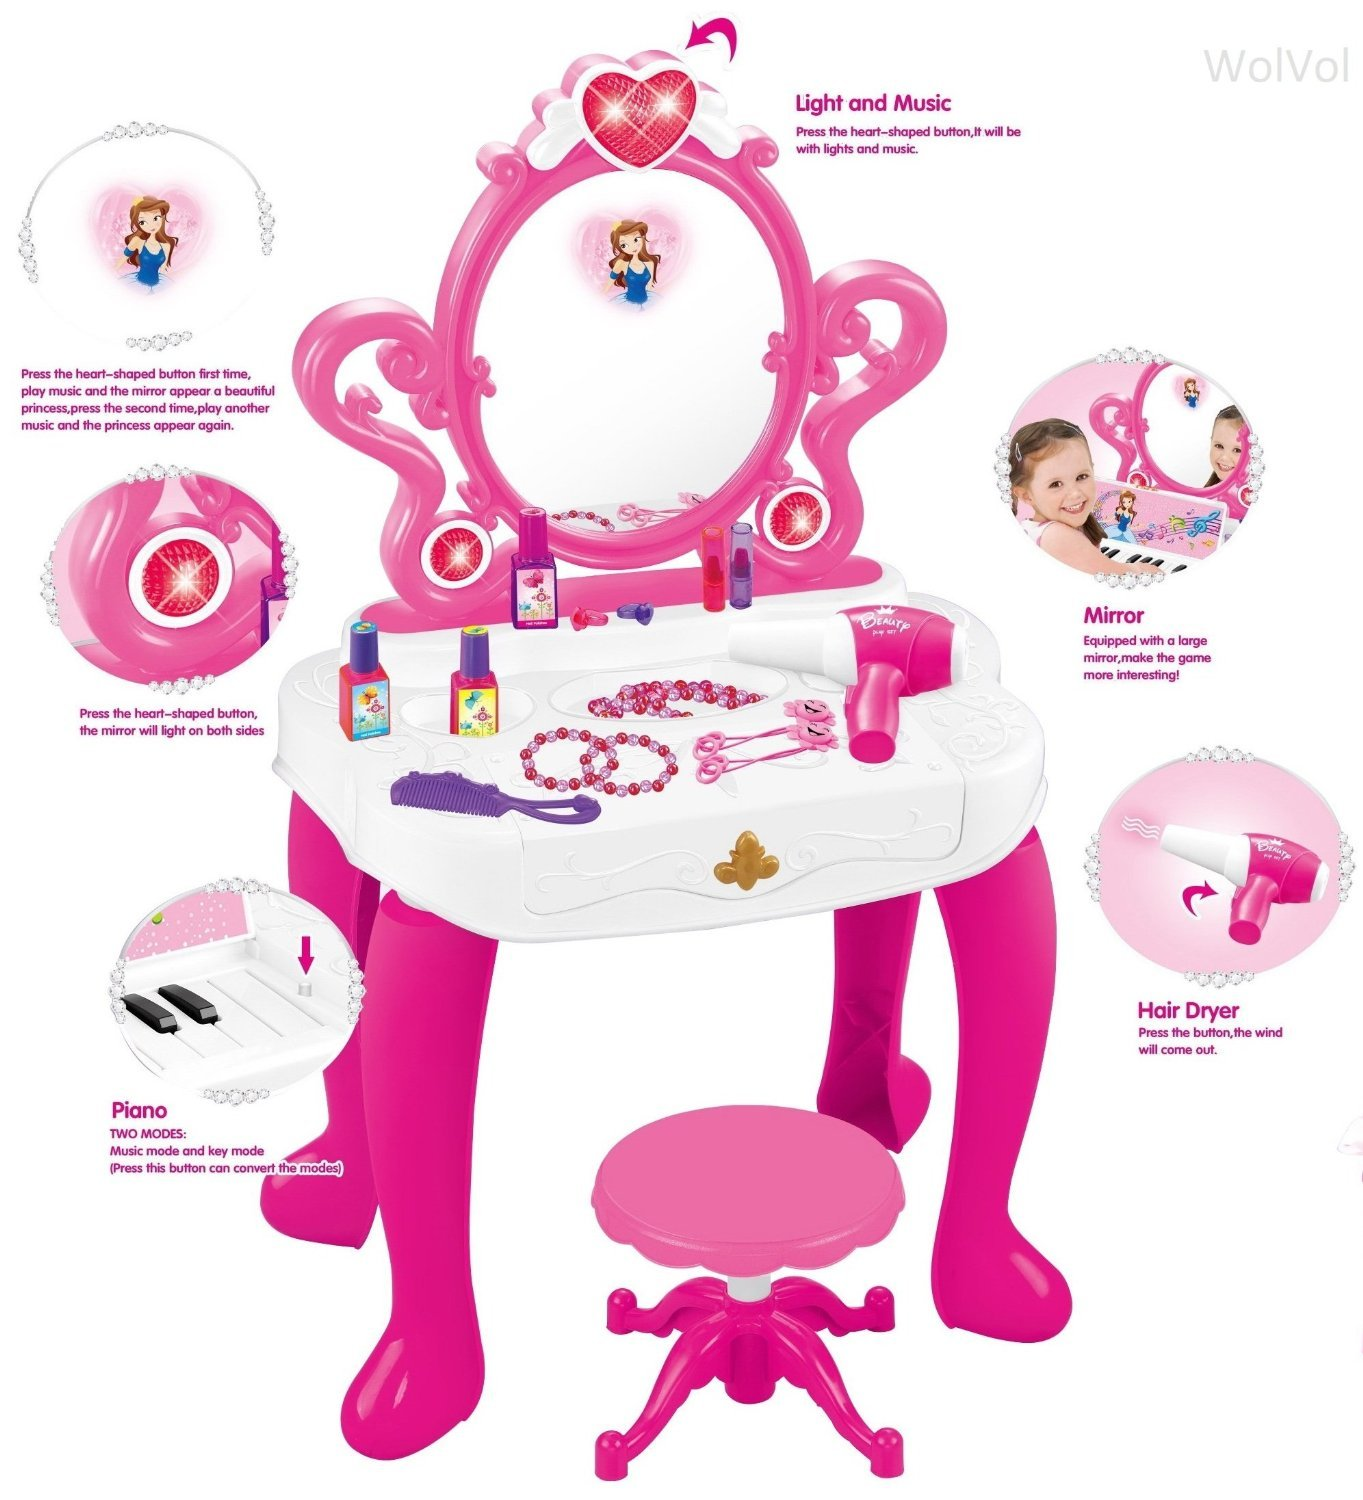 WolVol 2-in-1 Vanity Set Girls Toy Makeup Accessories with Working Piano & Flashing Lights, Big Mirror, Cosmetics, Working Hair Dryer - Glowing Princess Will Appear When Pressing The Mirror-Button by WolVol (Image #3)